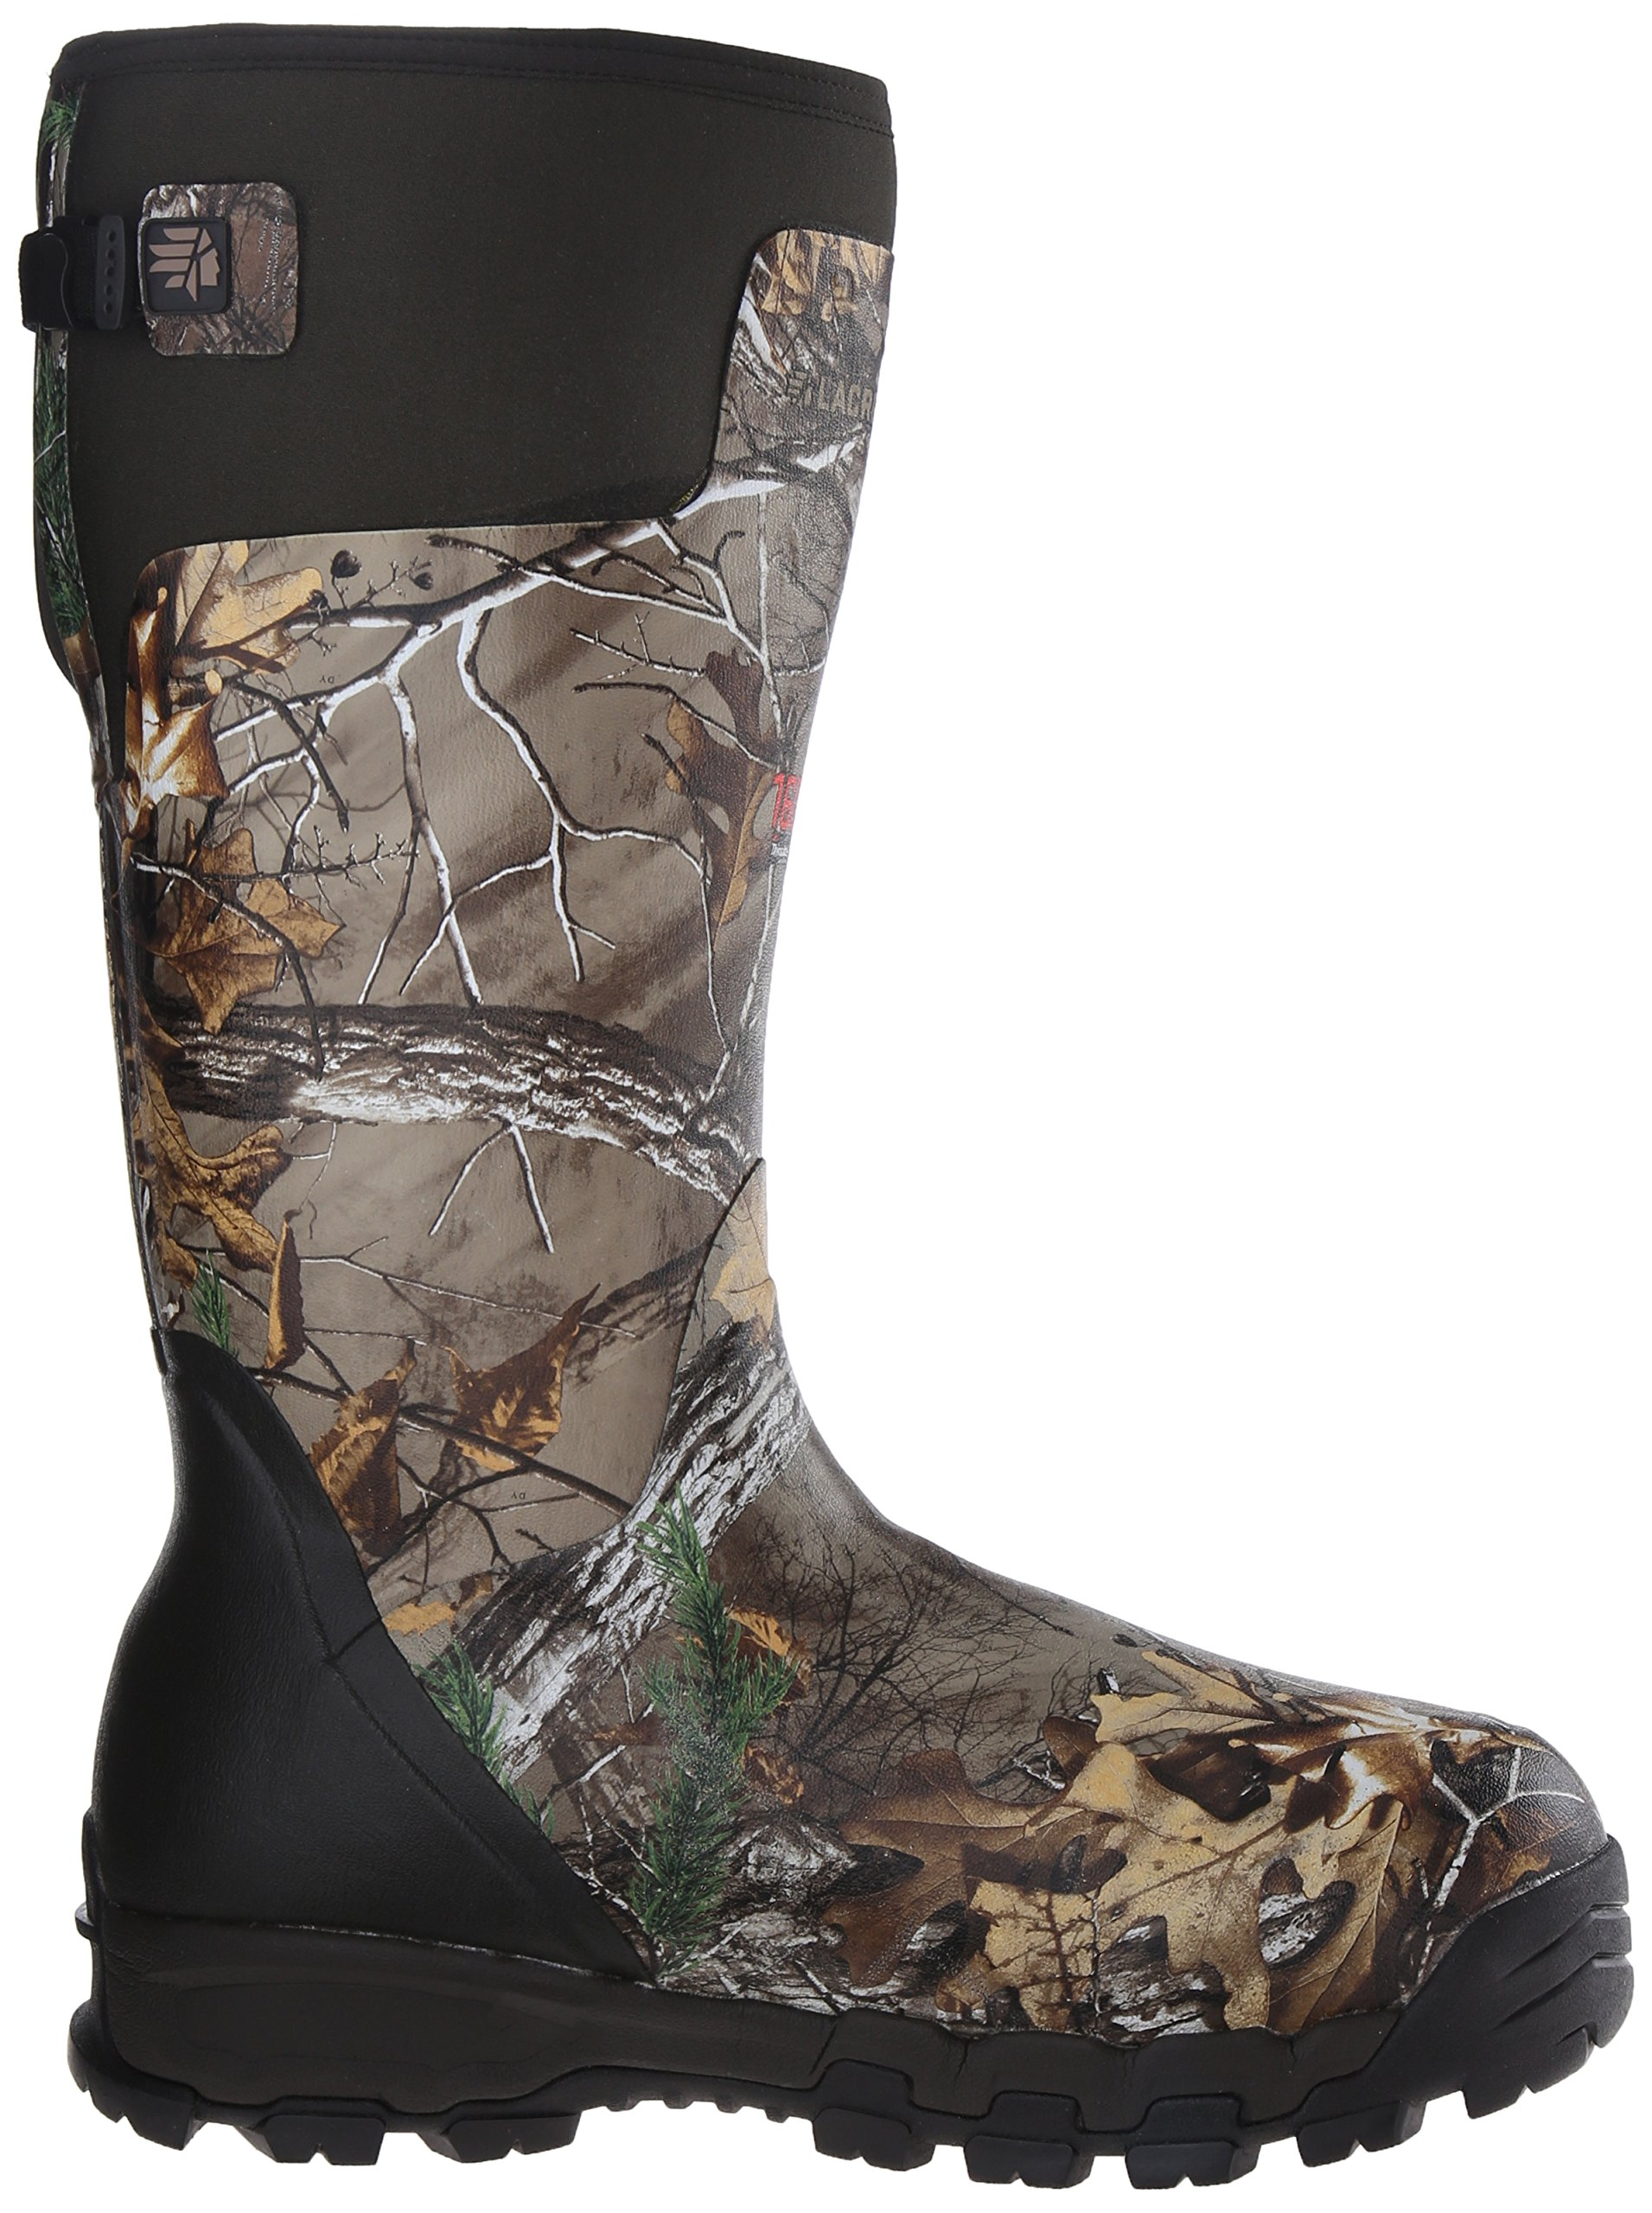 "LaCrosse Men's Alphaburly Pro 18"" 1600G Hunting Boot,Realtree Xtra,11 M US by Lacrosse (Image #7)"